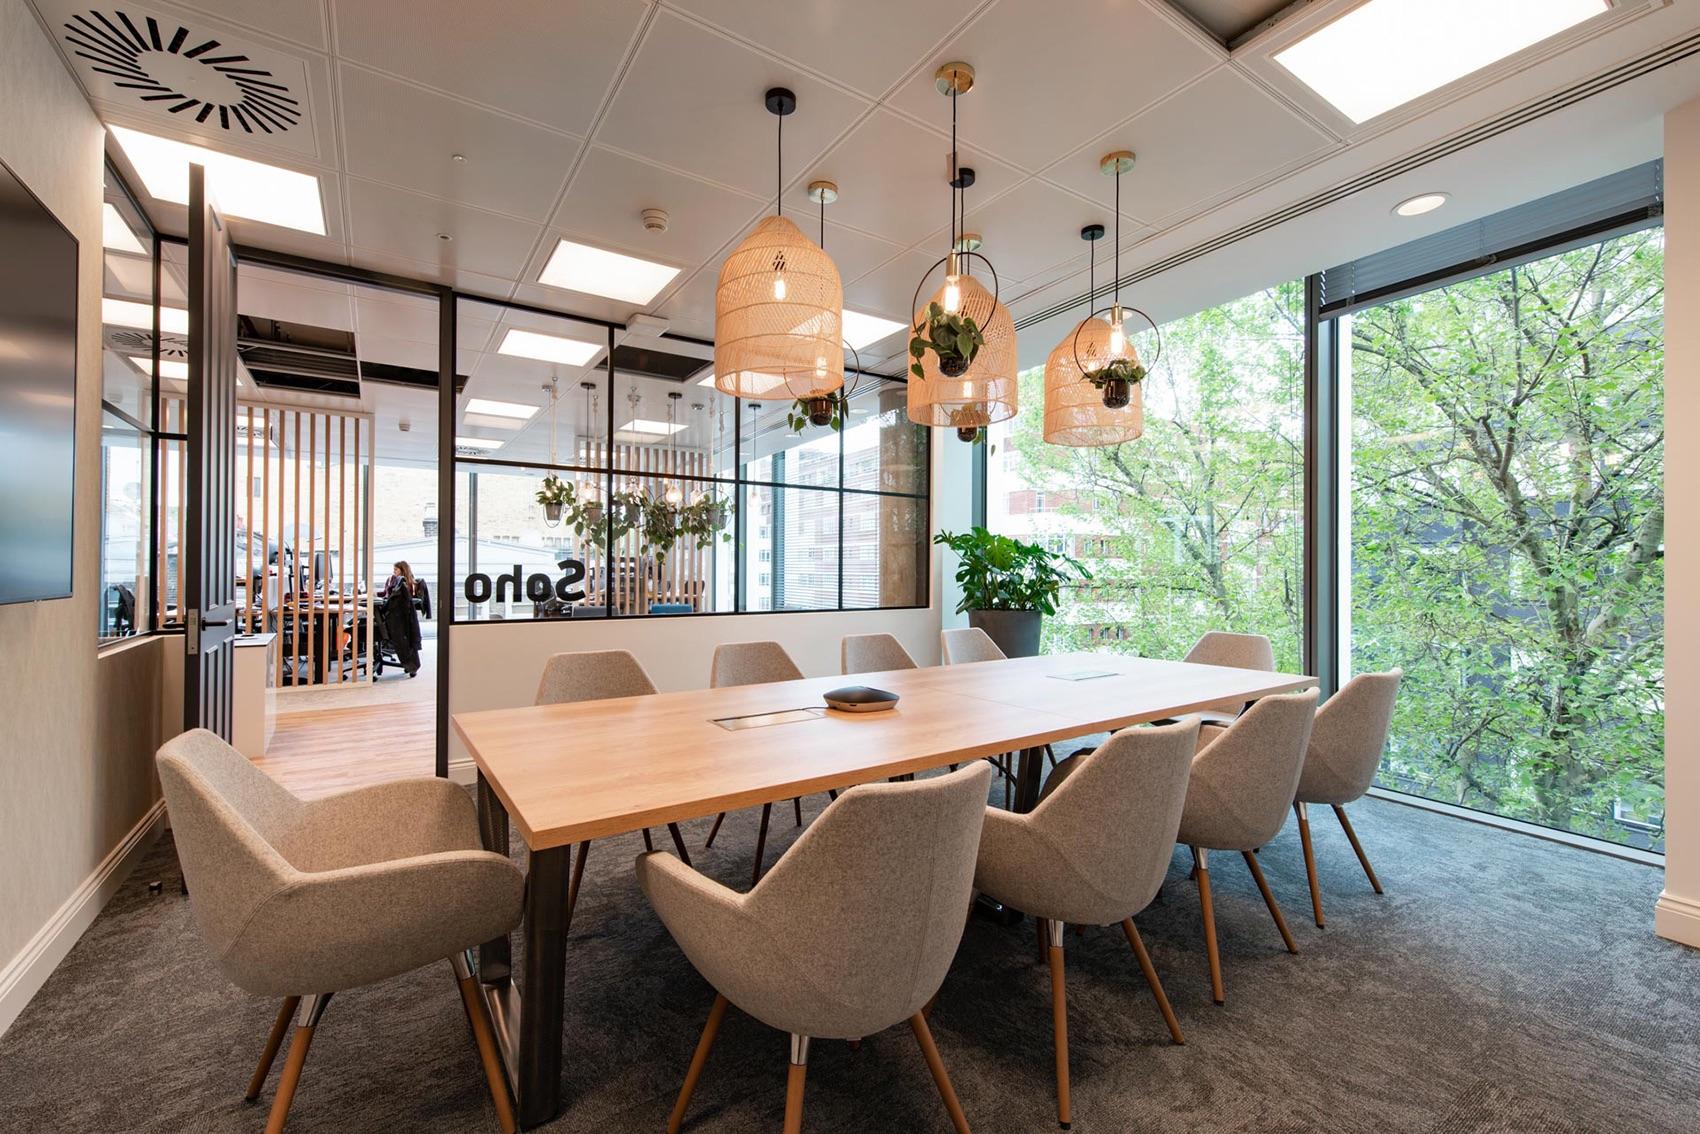 tomtom-london-office-5